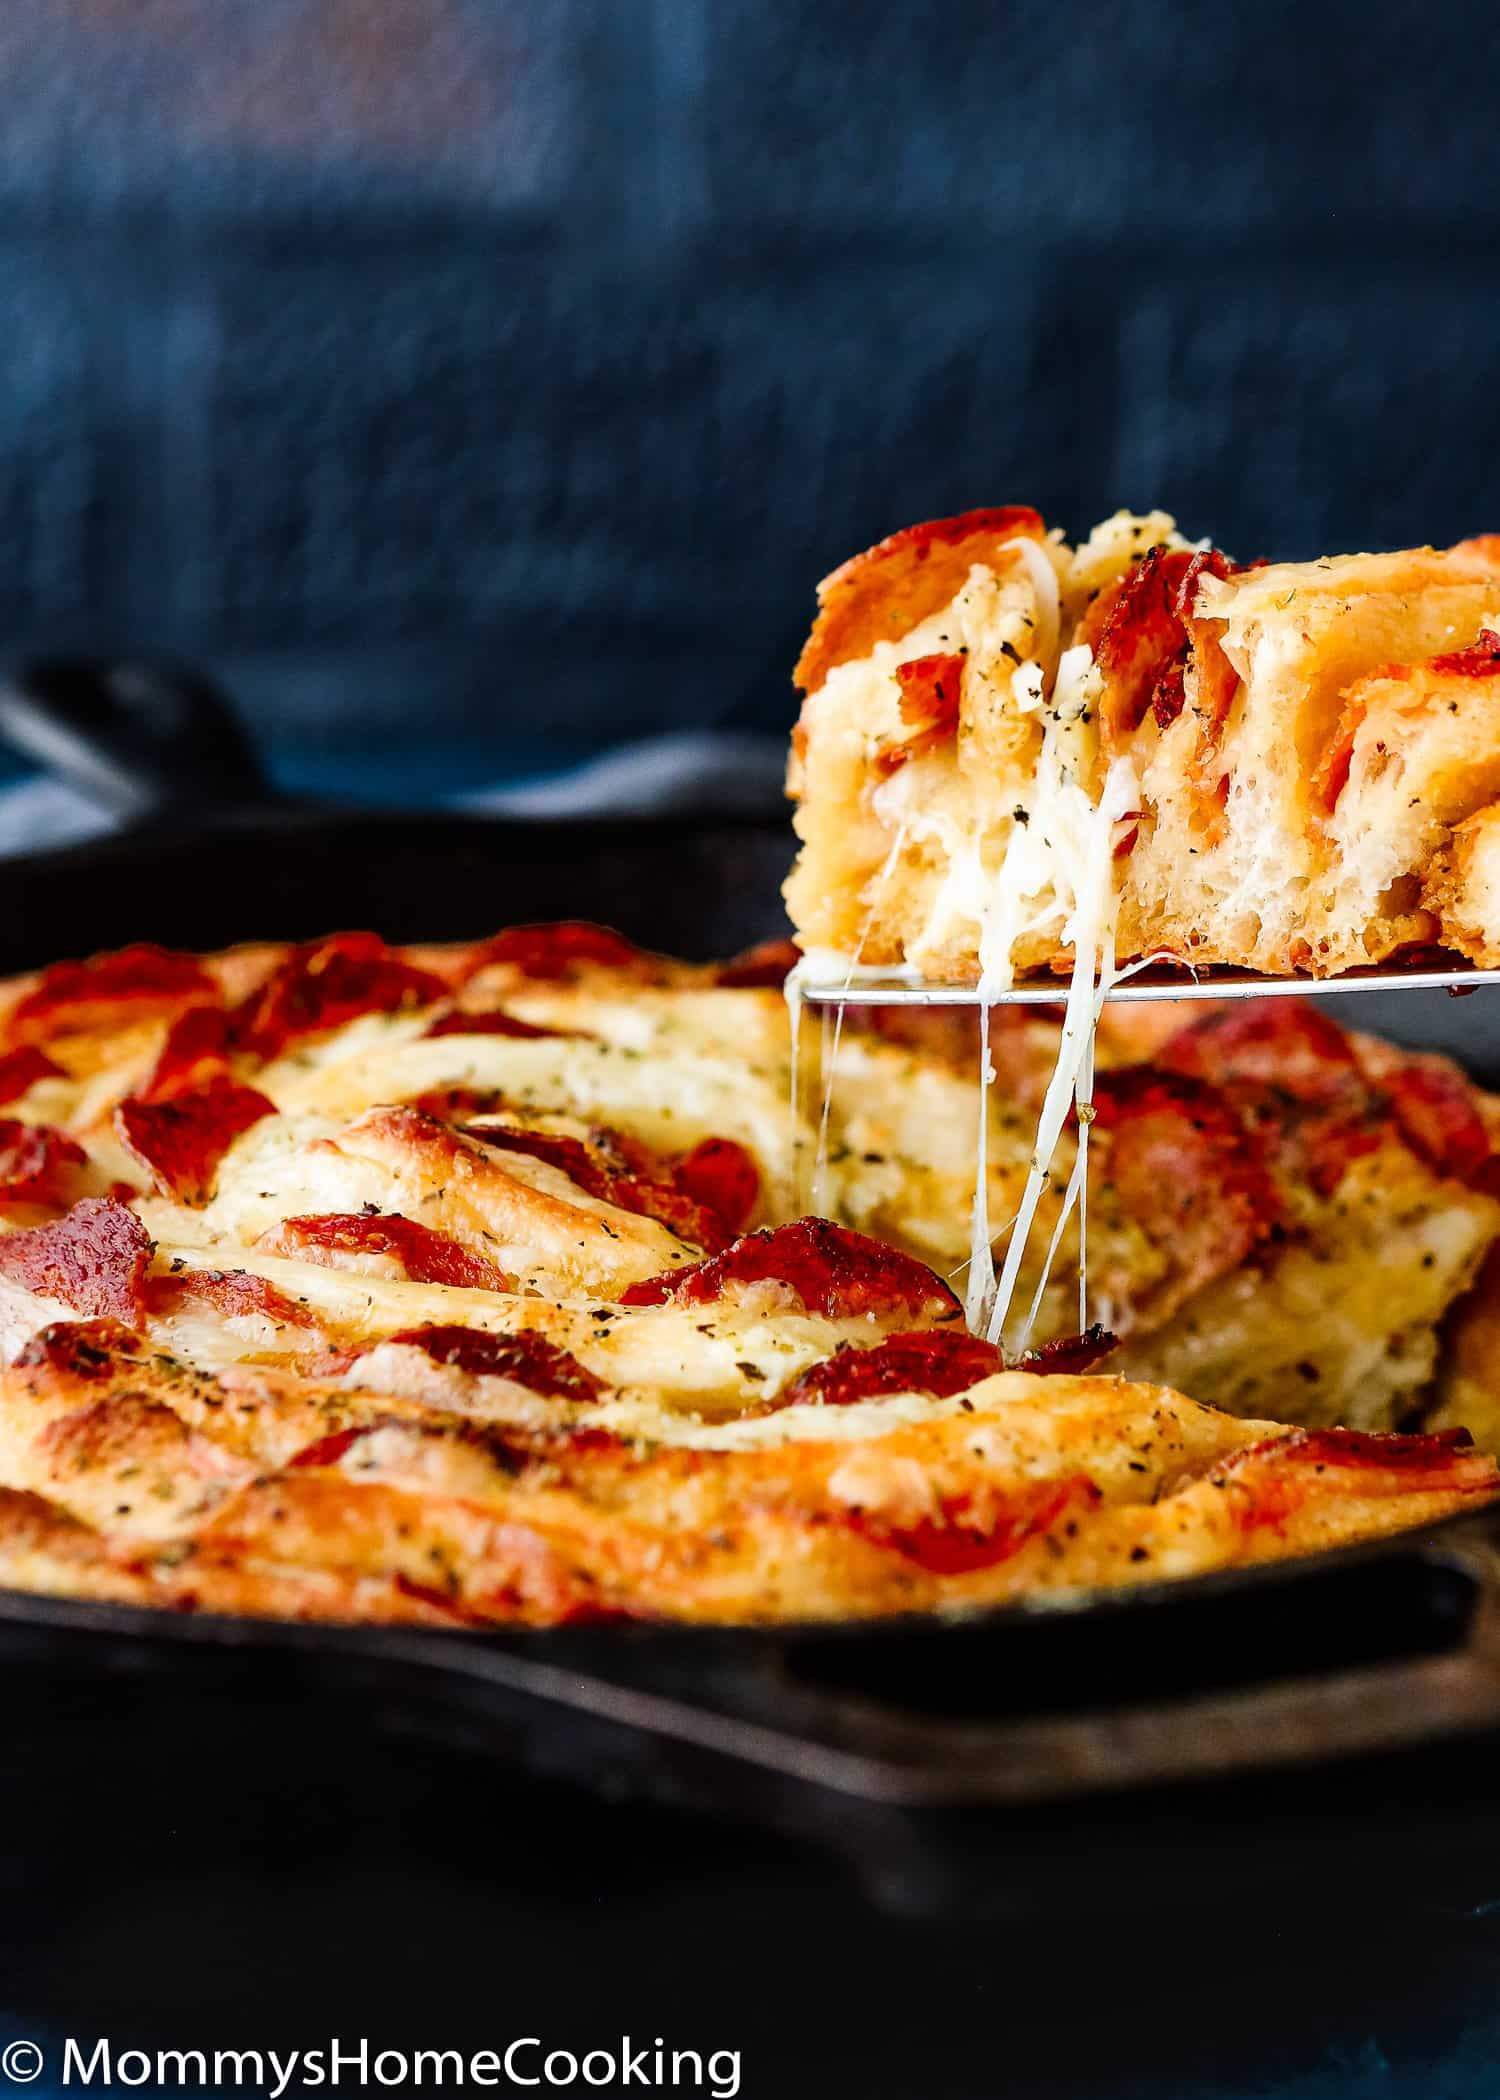 This Swiss Cheese and Pepperoni Spiral is ultra-easy to make and perfect for game days and all gatherings. It's cheesy and irresistibly delicious! A touchdown-worthy appetizer. https://mommyshomecooking.com